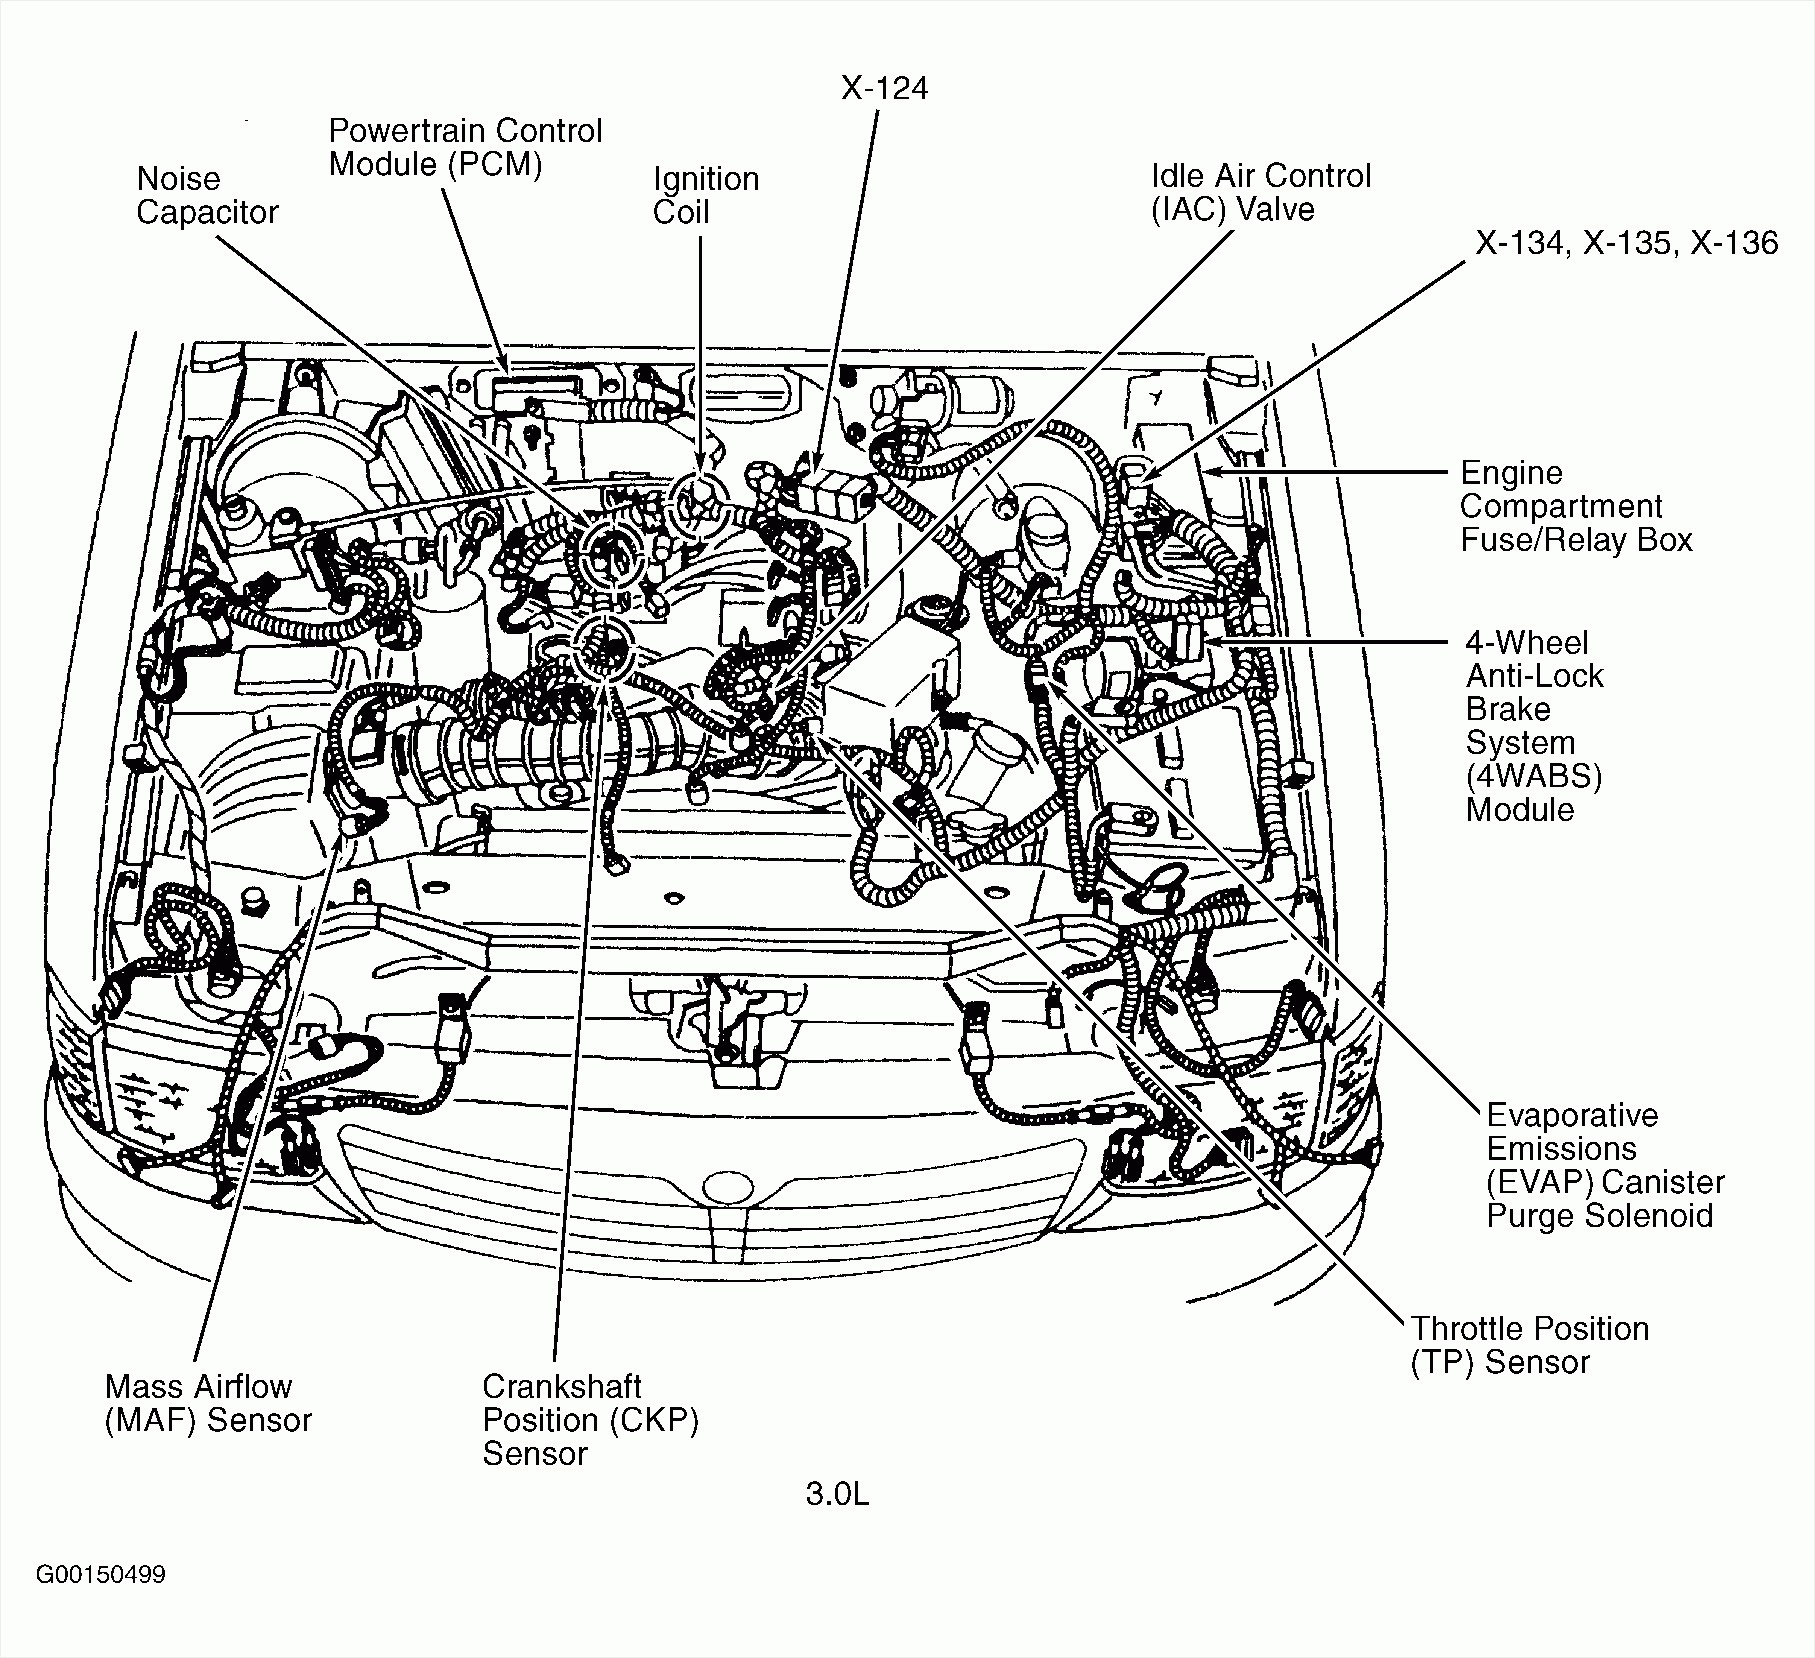 2001 Ford Ranger 3 0 Fuse Box Diagram Diy Enthusiasts Wiring 99 1994 Engine Diagrams U2022 Rh Broadwaycomputers Us Locations